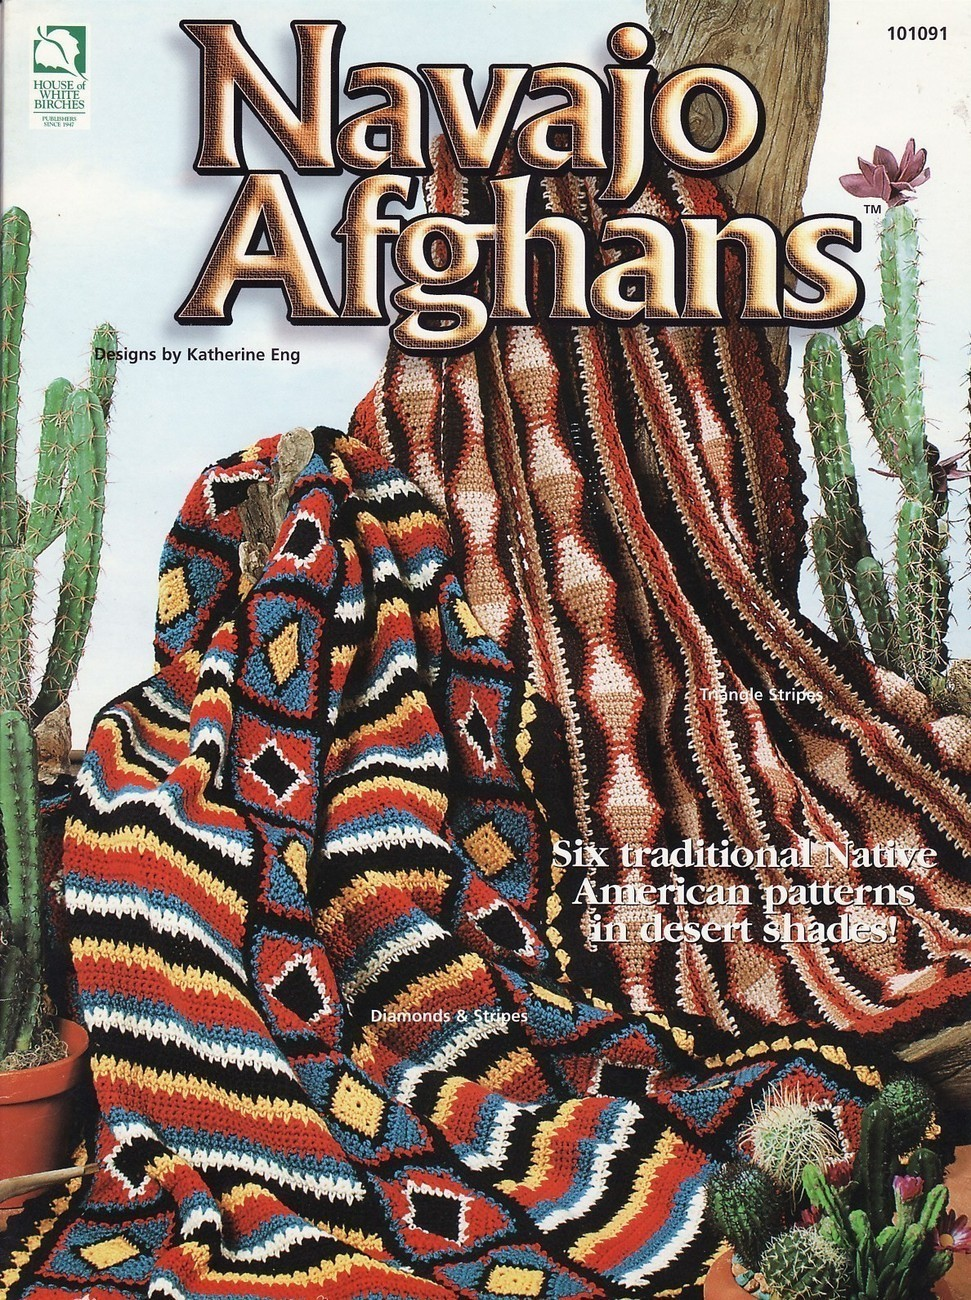 Navajo Afghans South